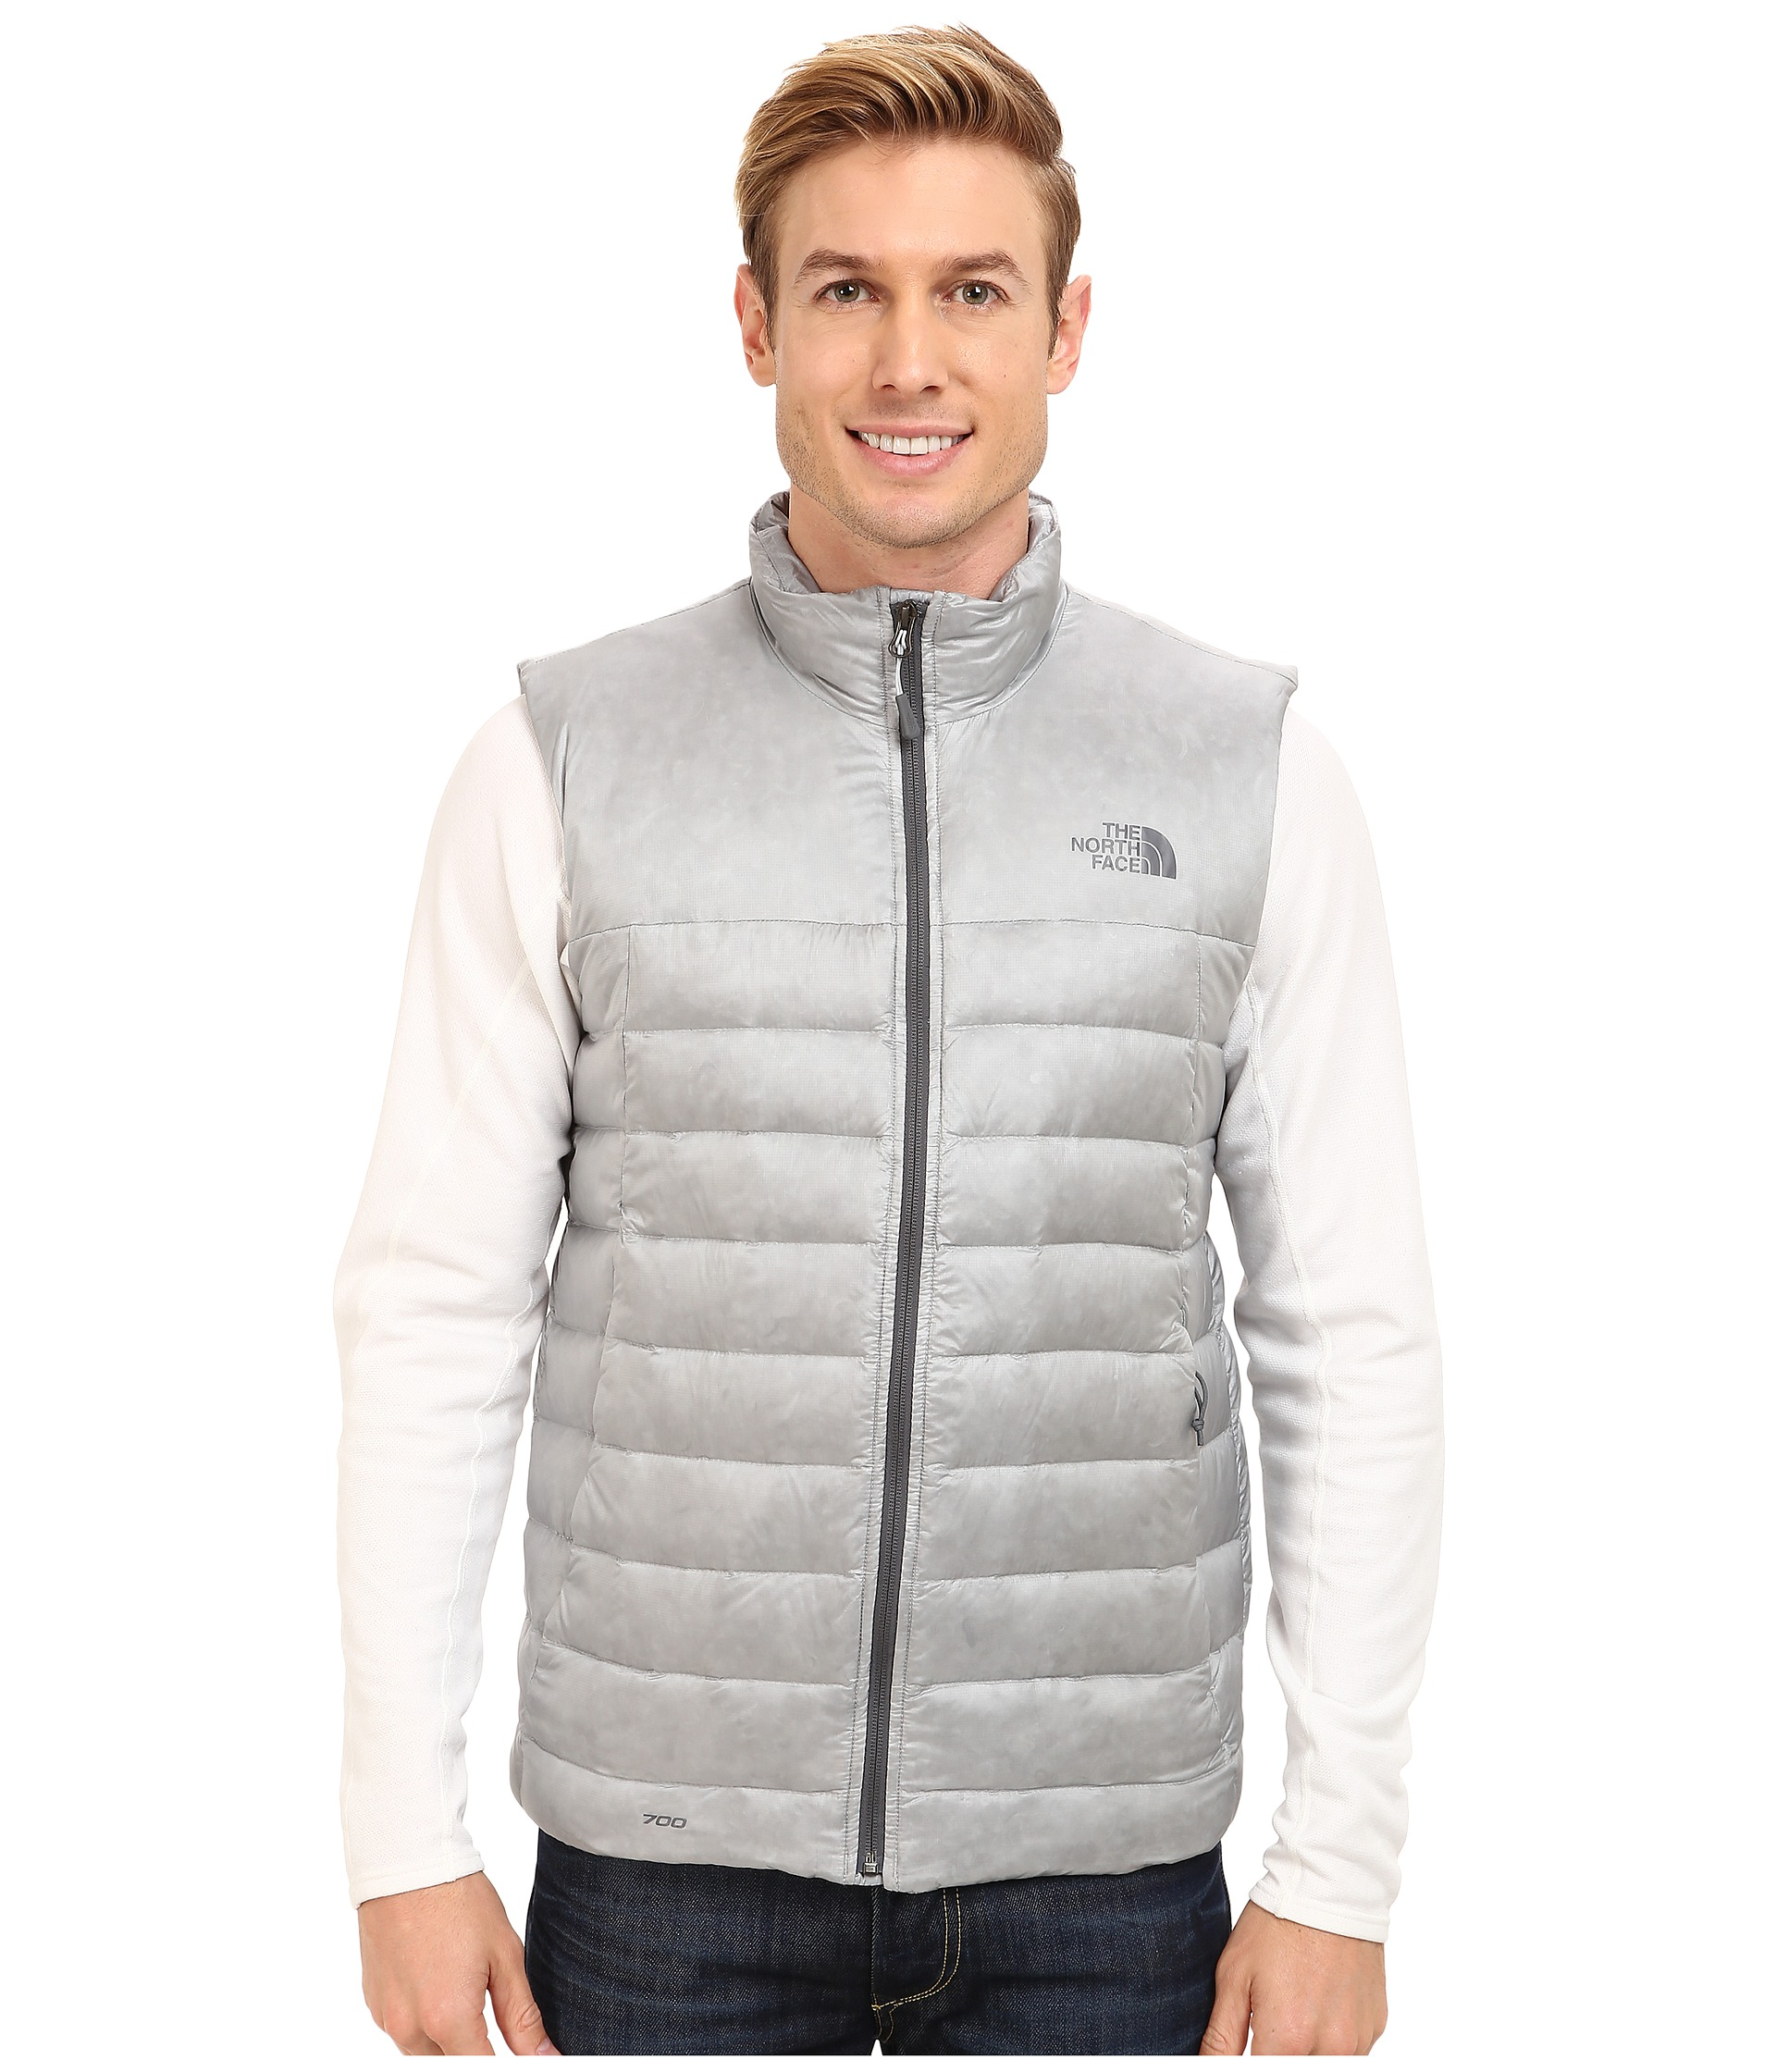 The North Face Tonnerro Vest